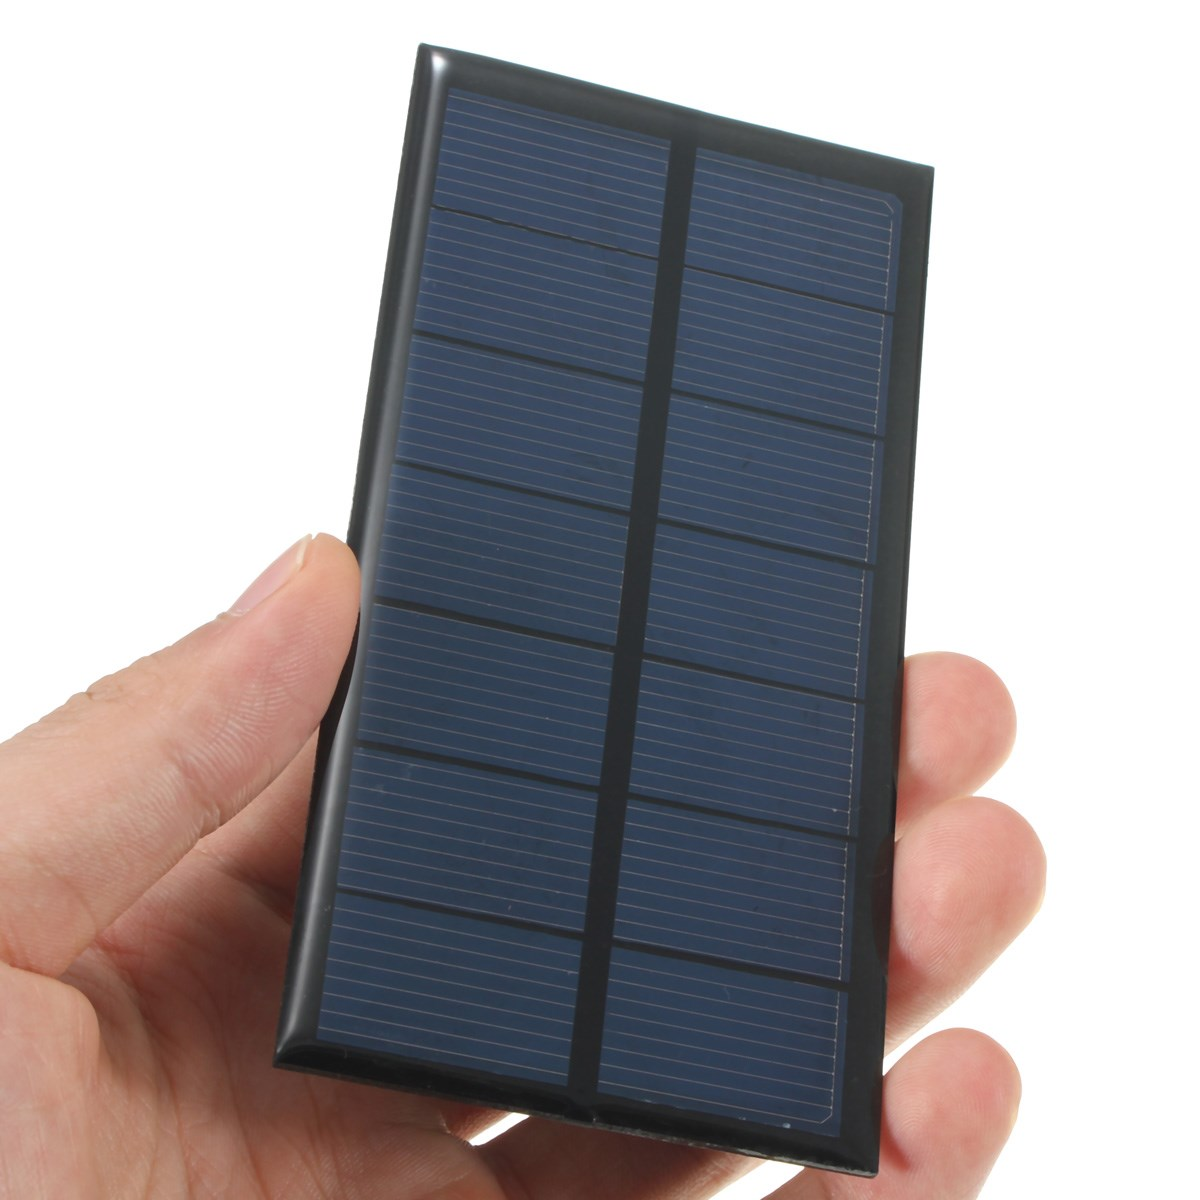 Leory Hot Sale 3.5V 250mAh 0.8W Polycrystalline silicon Mini Solar Panel module Cell For Charger DC Battery DIY Kit 120x60mm